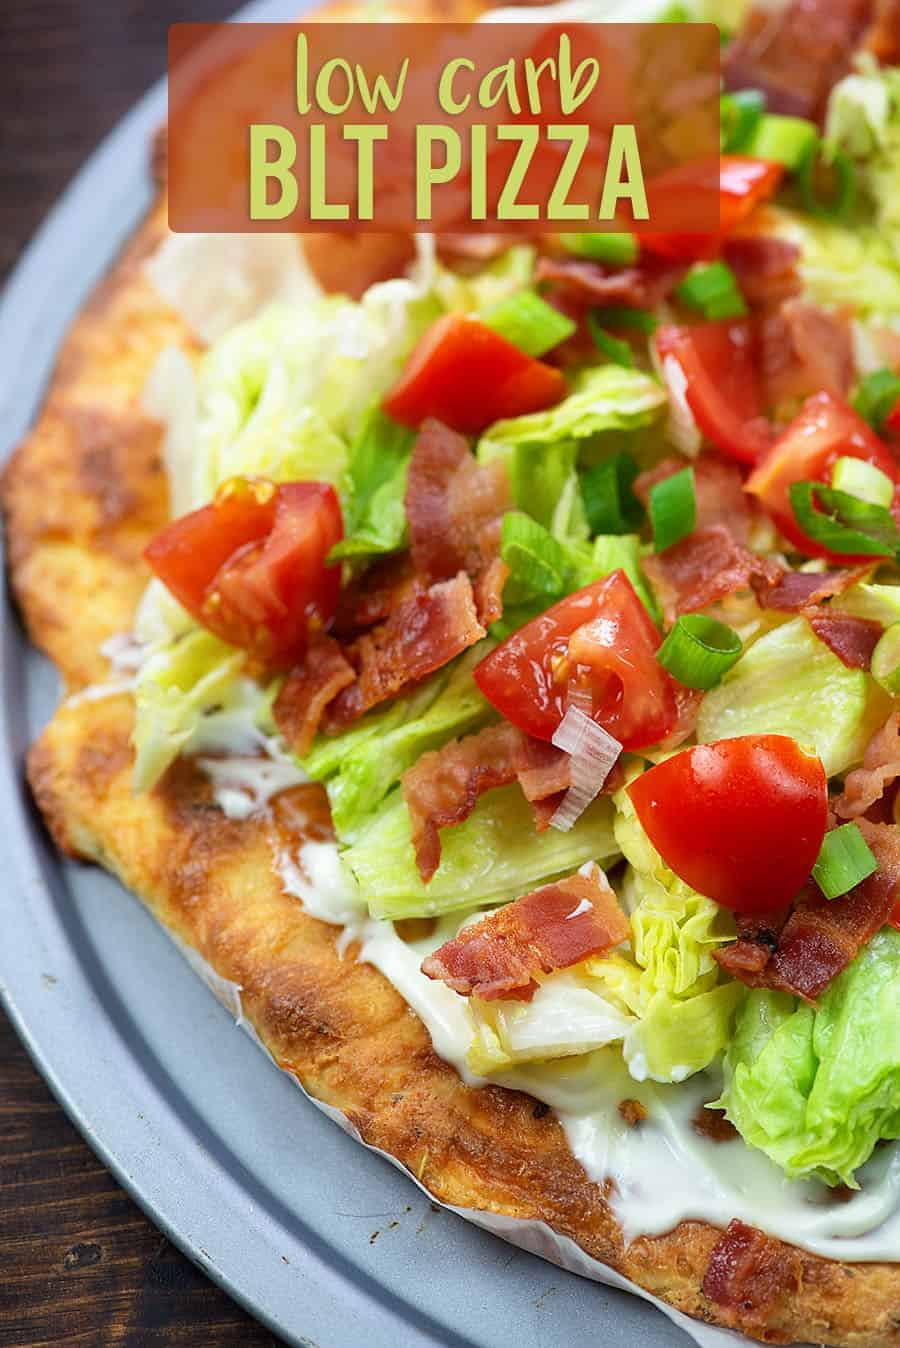 BLT pizza on pizza pan